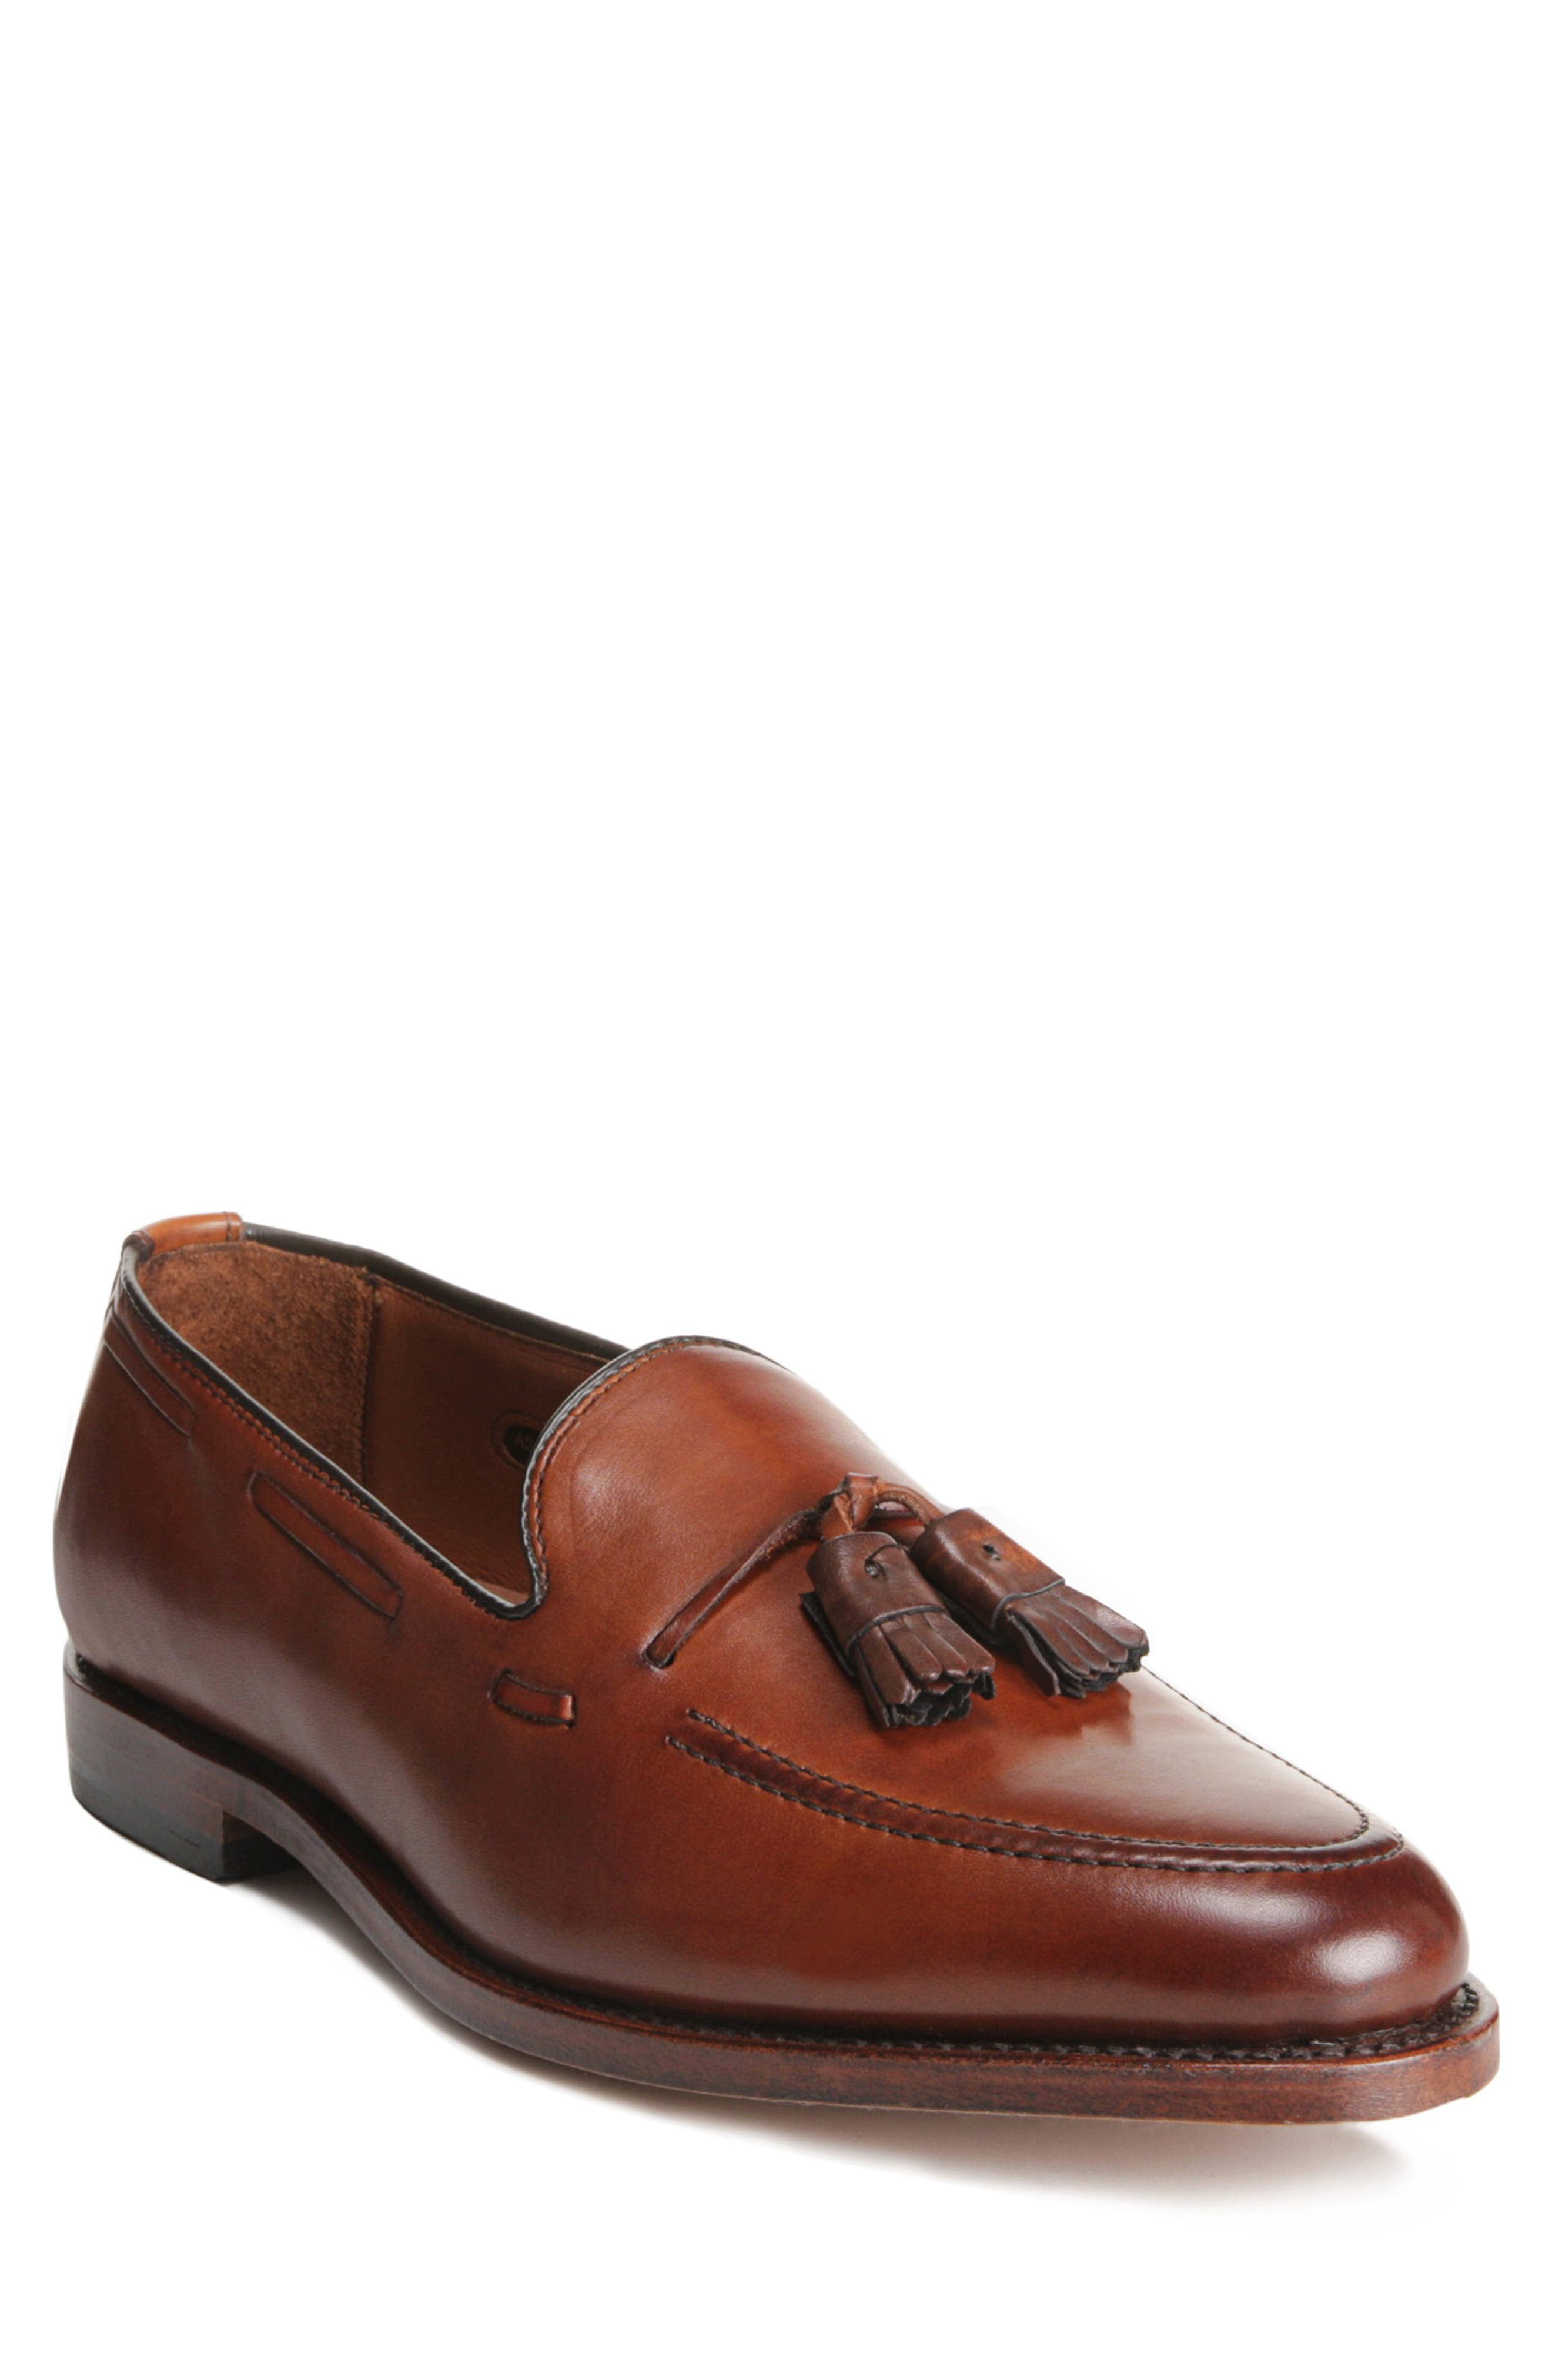 This dress-leather moccasin is handsomely styled with side lacing and tassels. It\\\'s cut in a slightly pointed toe and built for an adaptive fit. Style Name: Allen Edmonds \\\'Grayson\\\' Tassel Loafer (Men). Style Number: 107681. Available in stores.